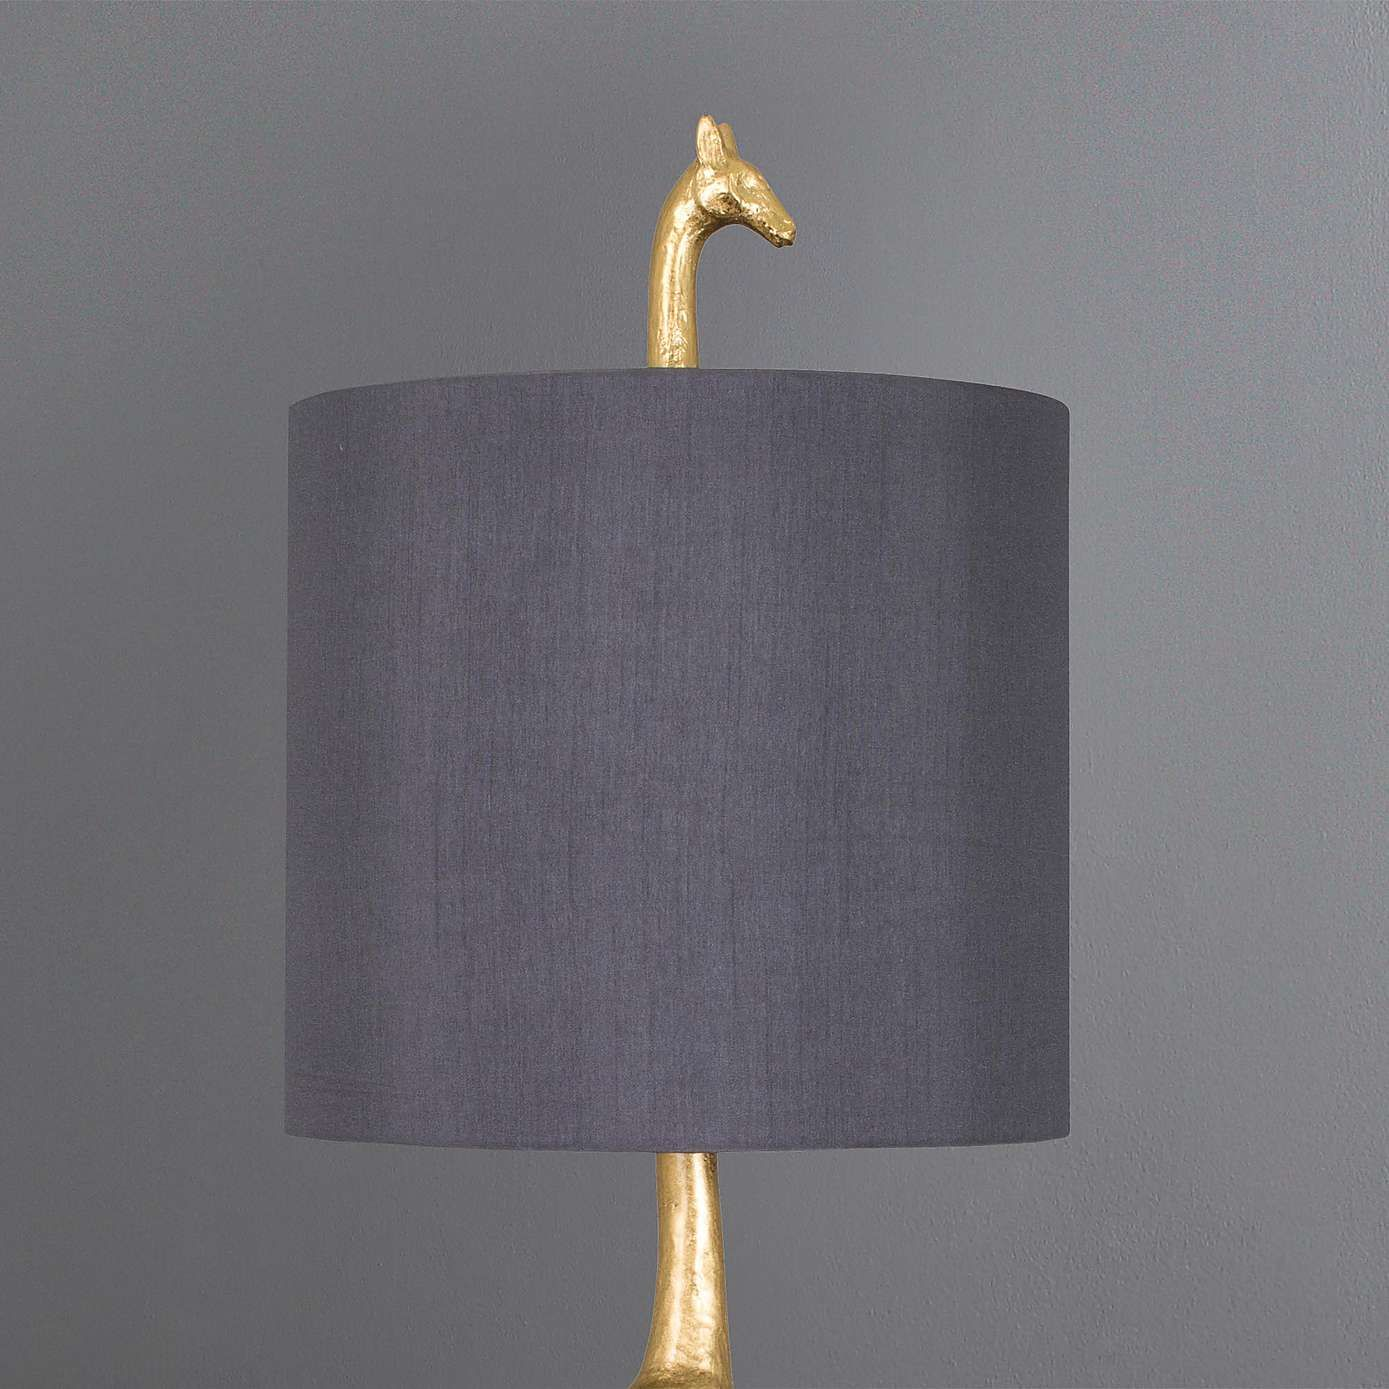 Malmo Giraffe Gold Table Lamp | Dunelm